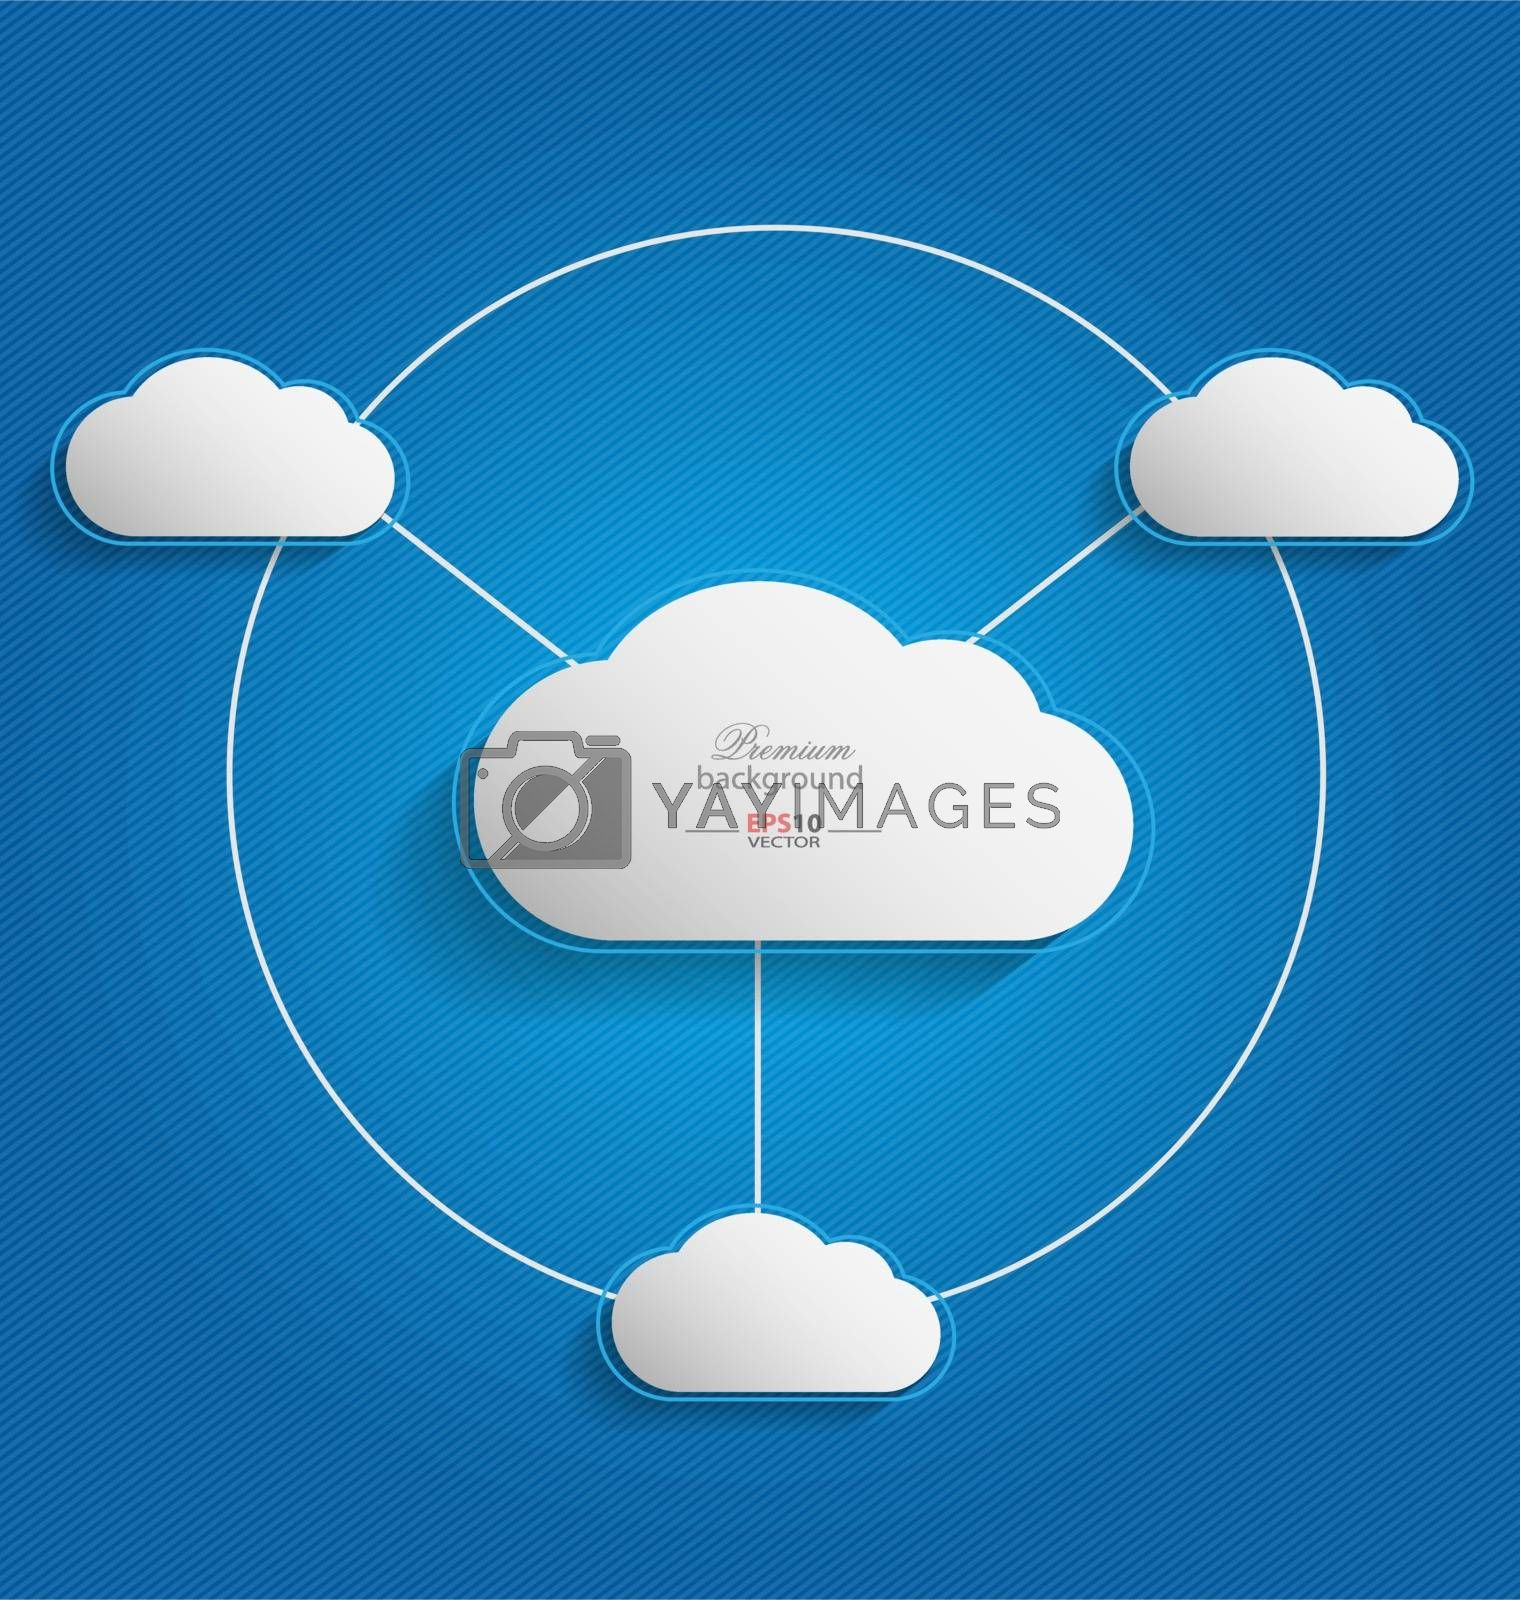 Elegant empty clouds on blue background for interactive data communication